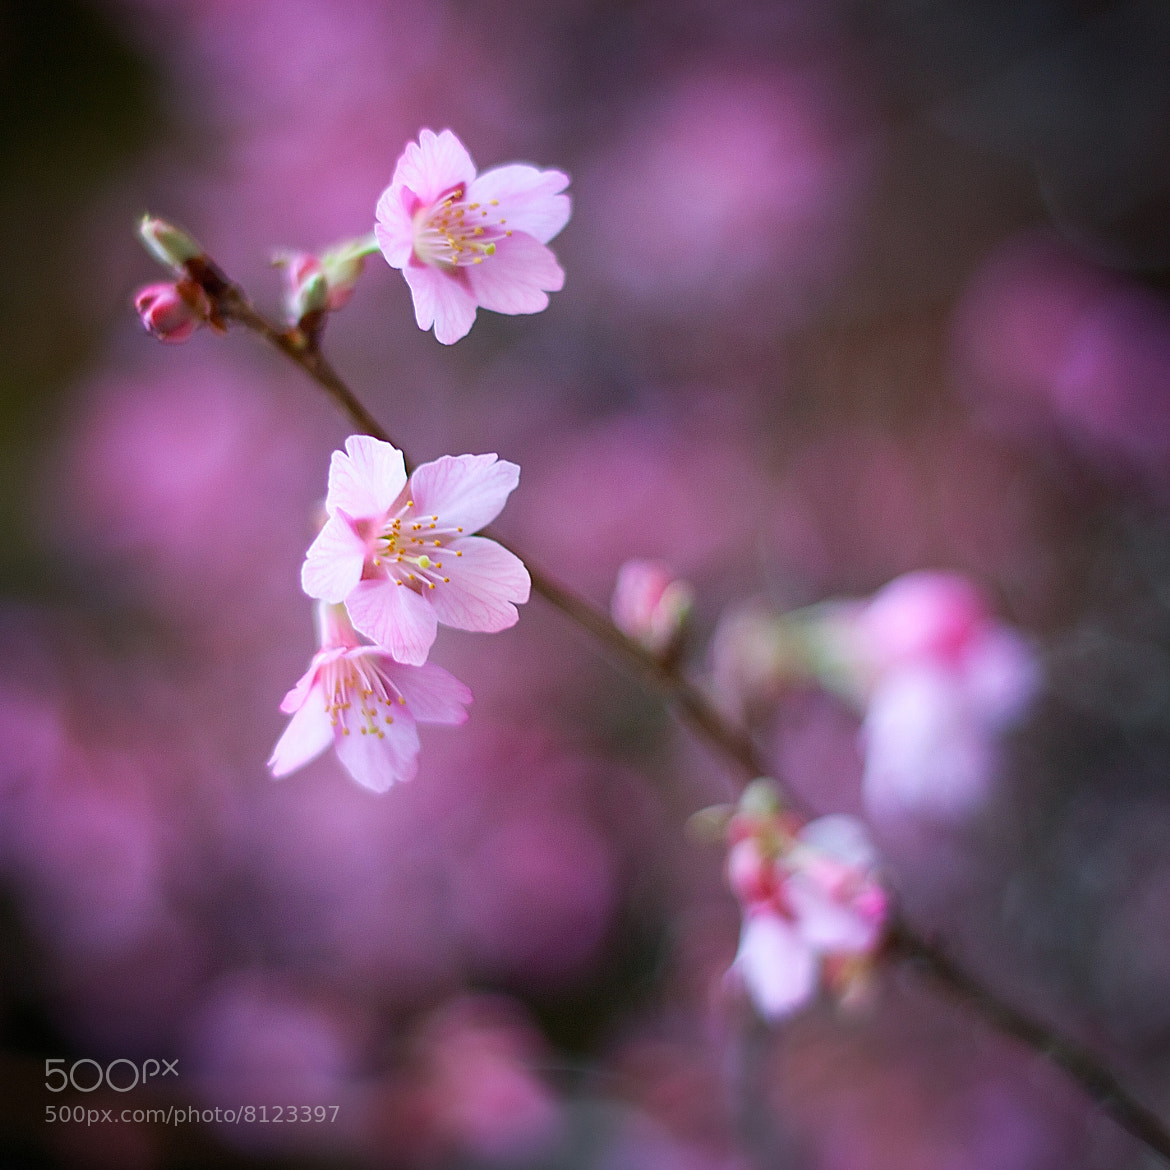 Photograph Cherry Blossom by Daniele Delgrosso on 500px